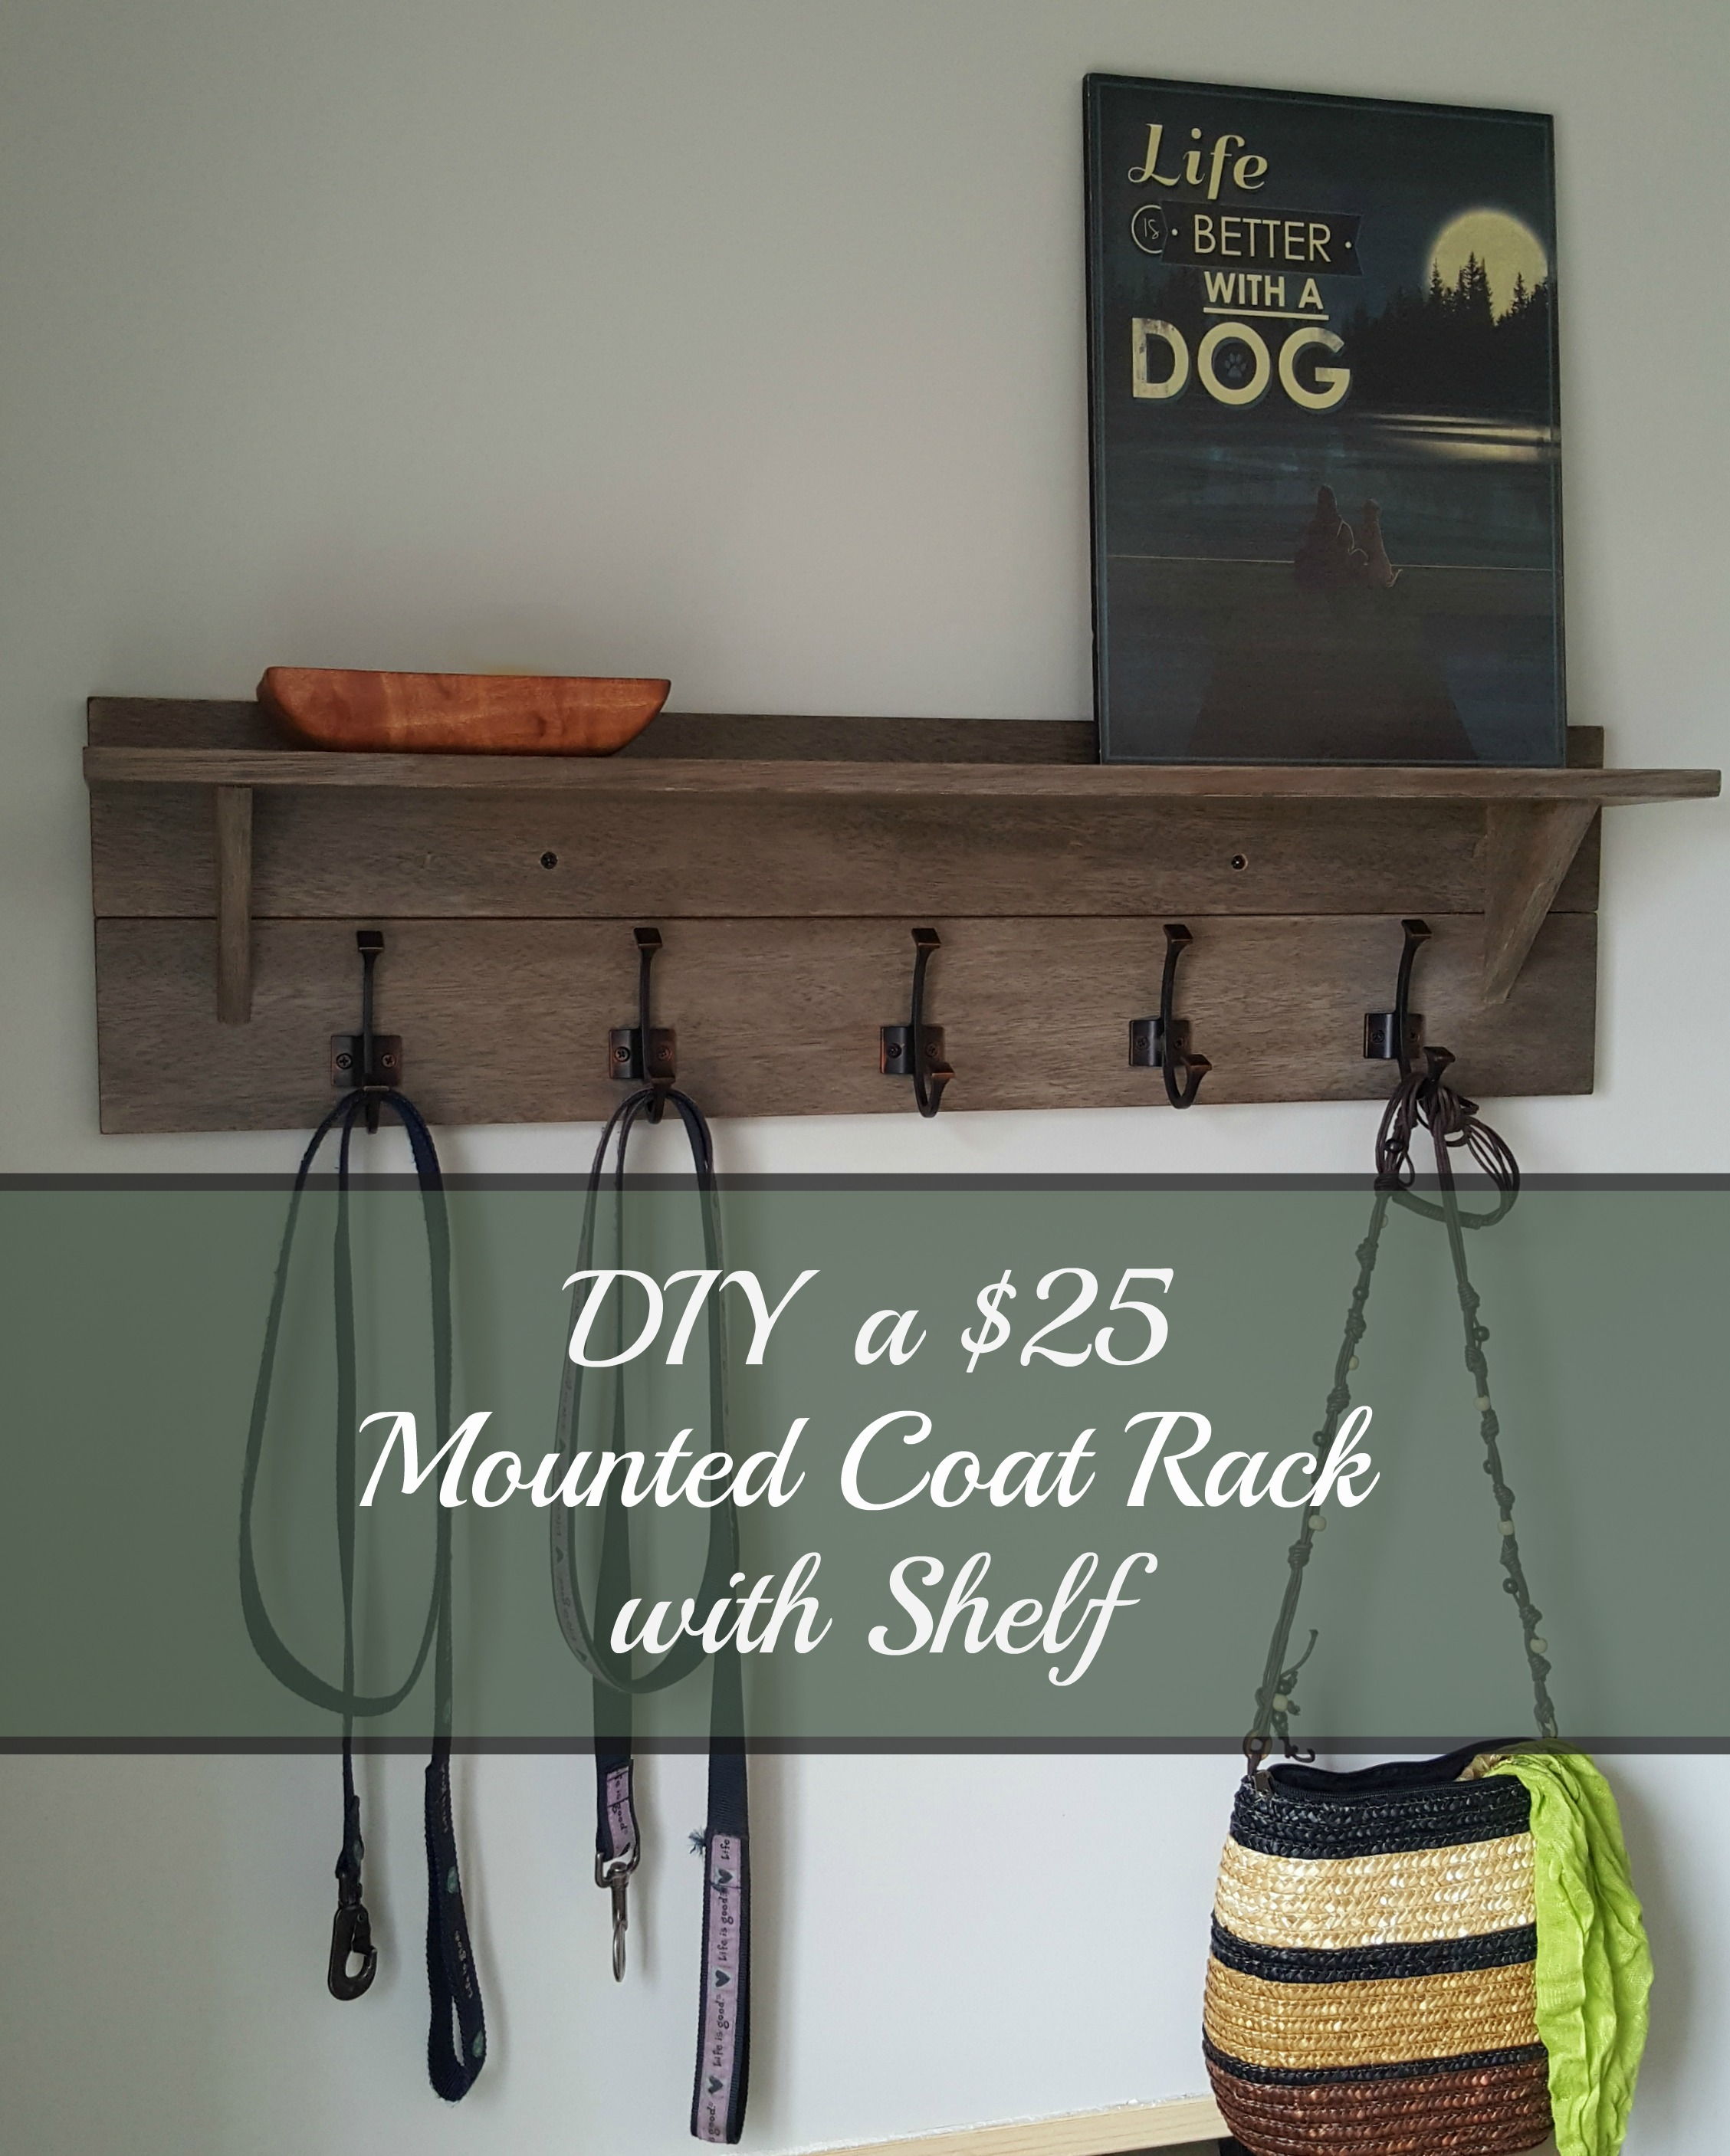 Coat Rack With Shelf Turtles And Tails Wall Mounted Coatrack With Shelf Diy